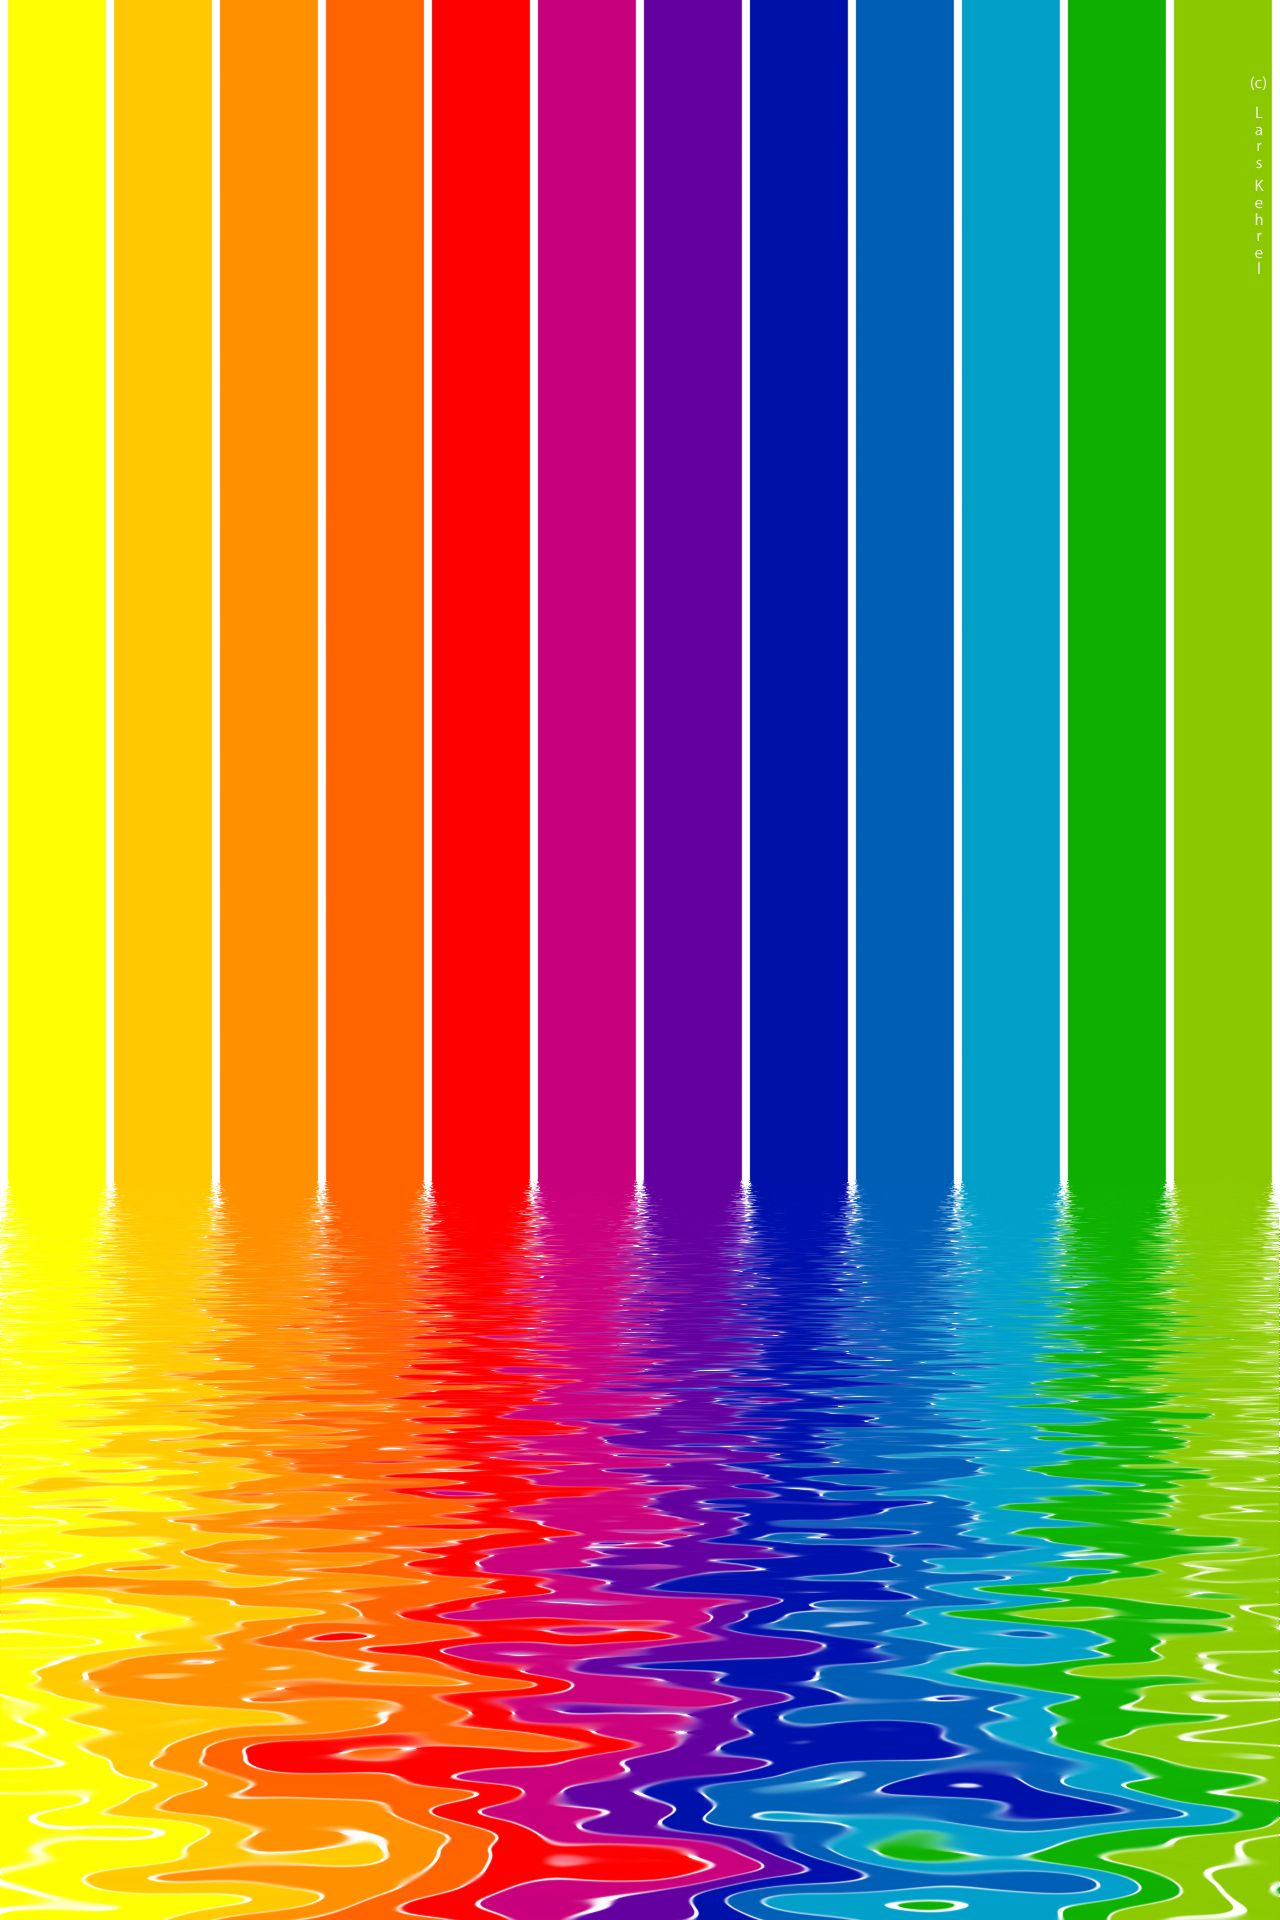 iPhone Wallpaper by Lars Kehrel. A World of Colors